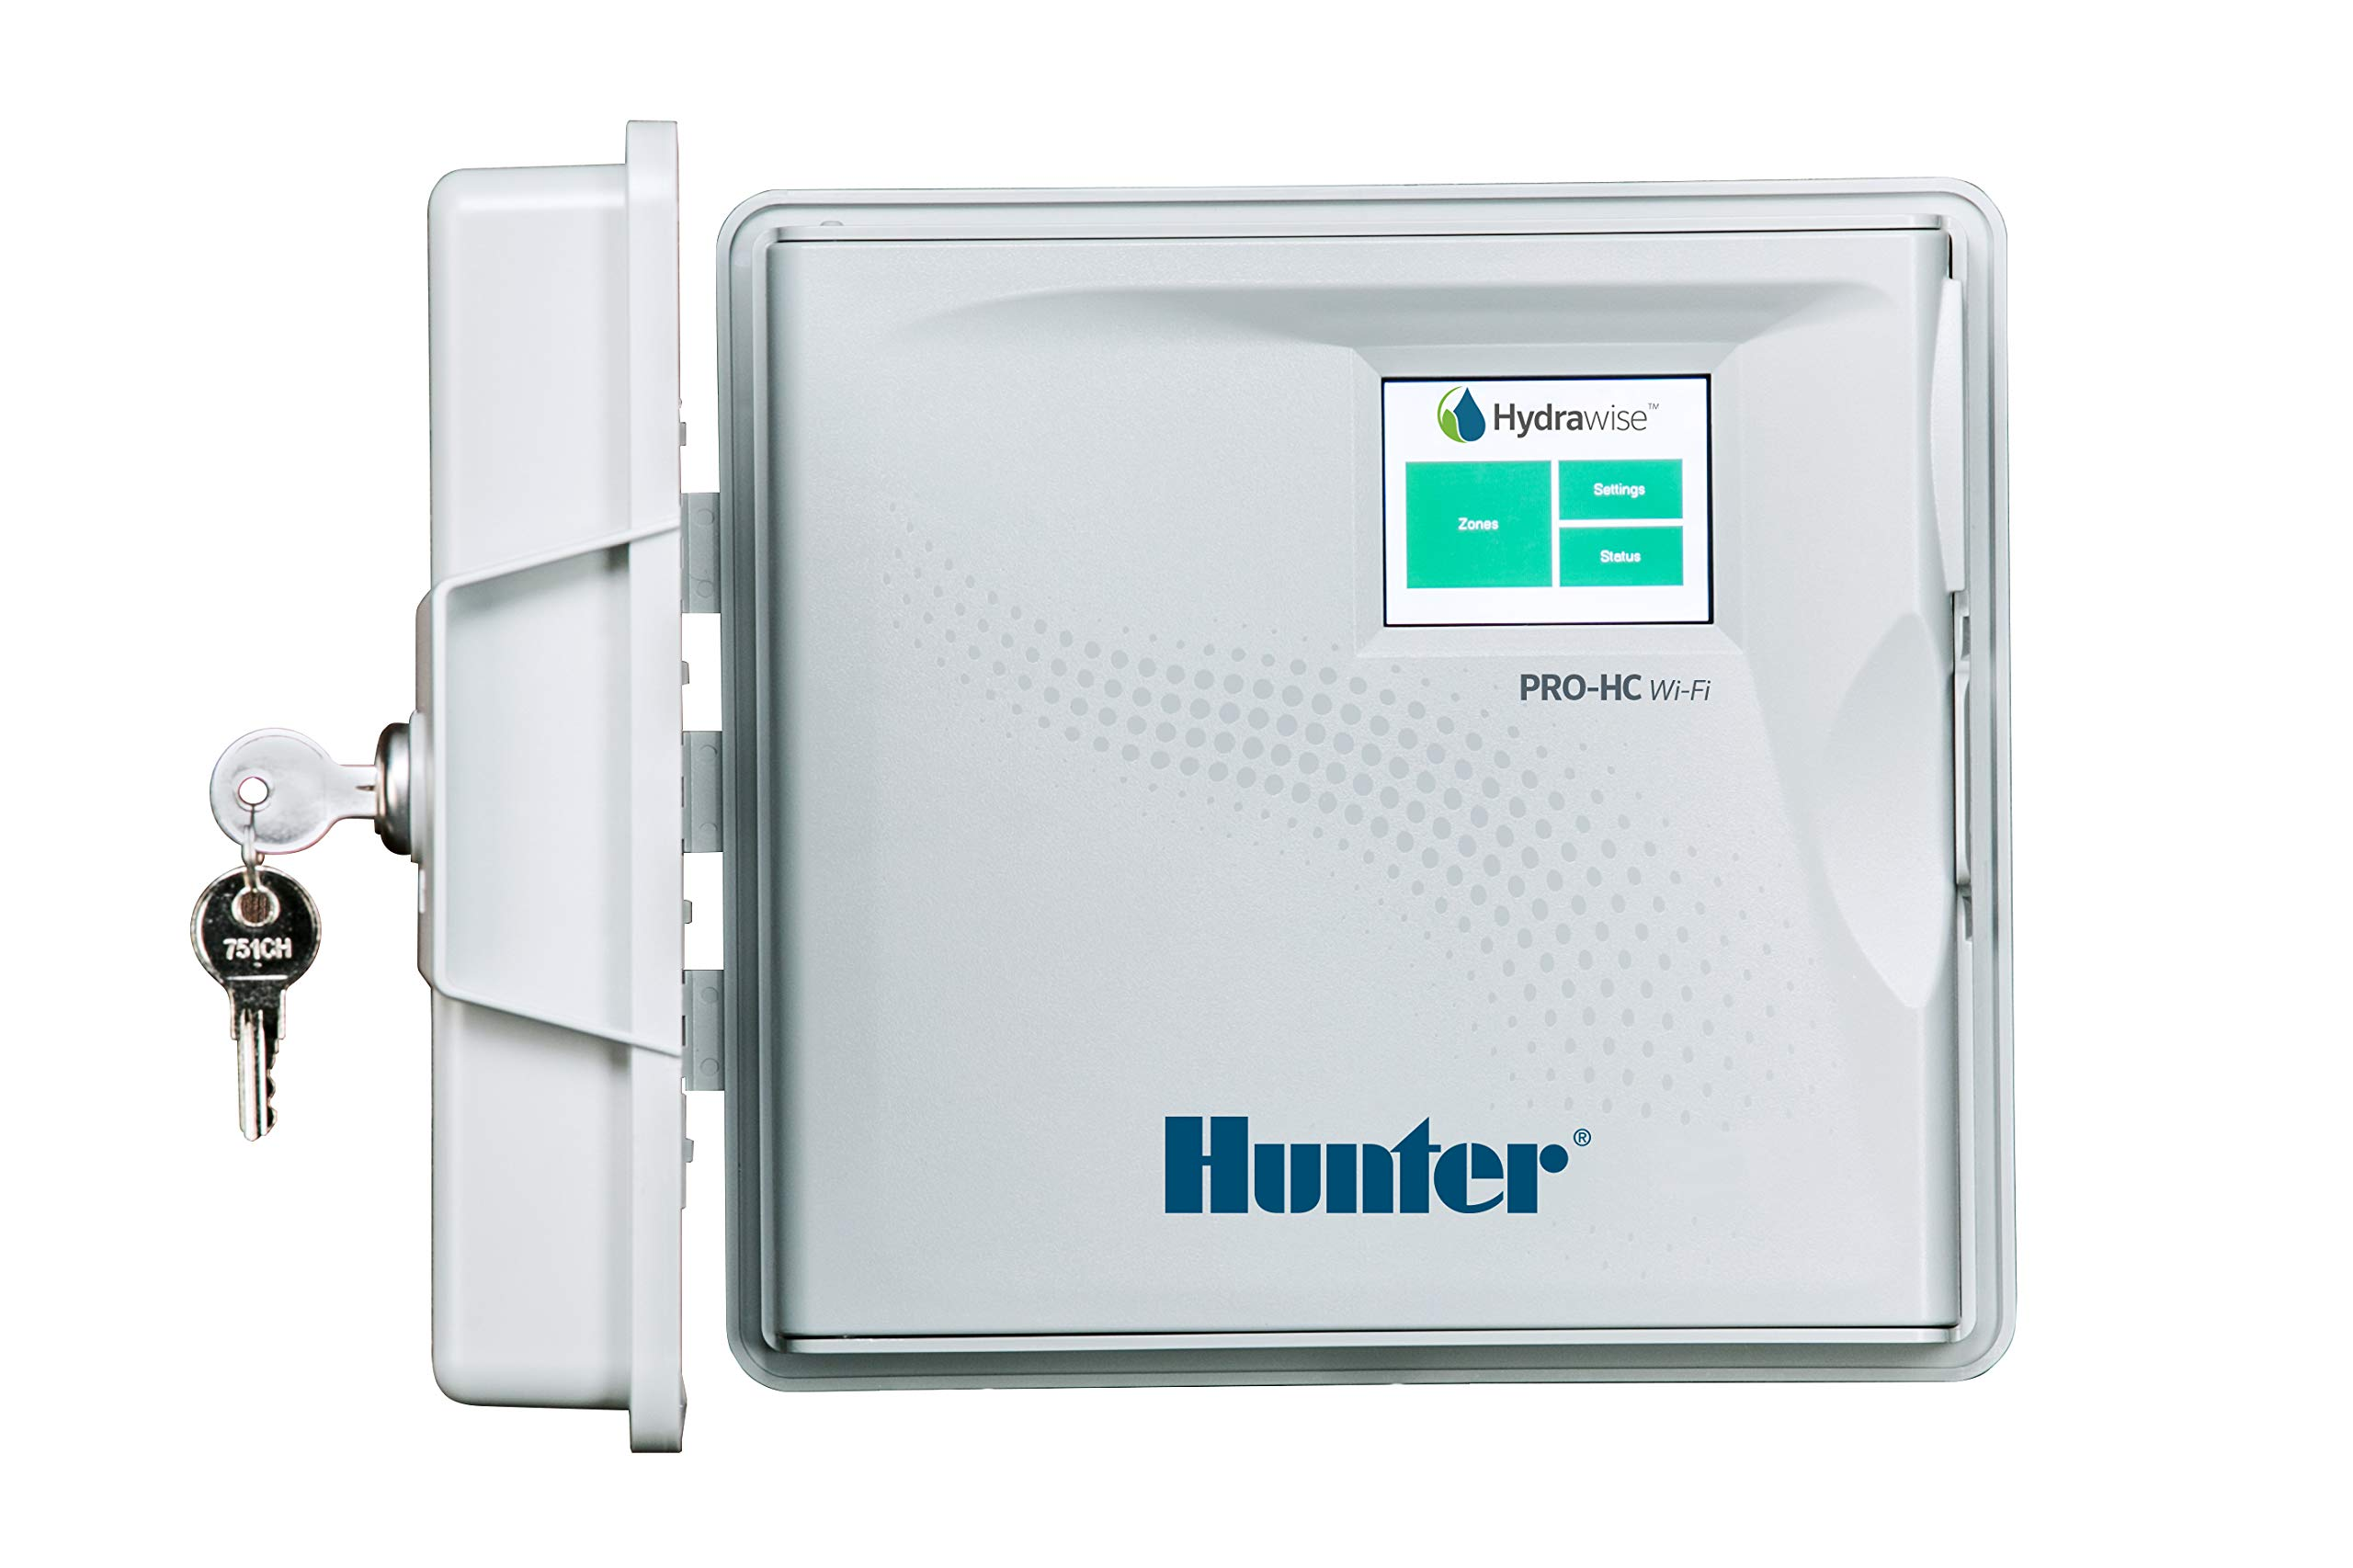 Residential Professional Controller Hydrawise Web based